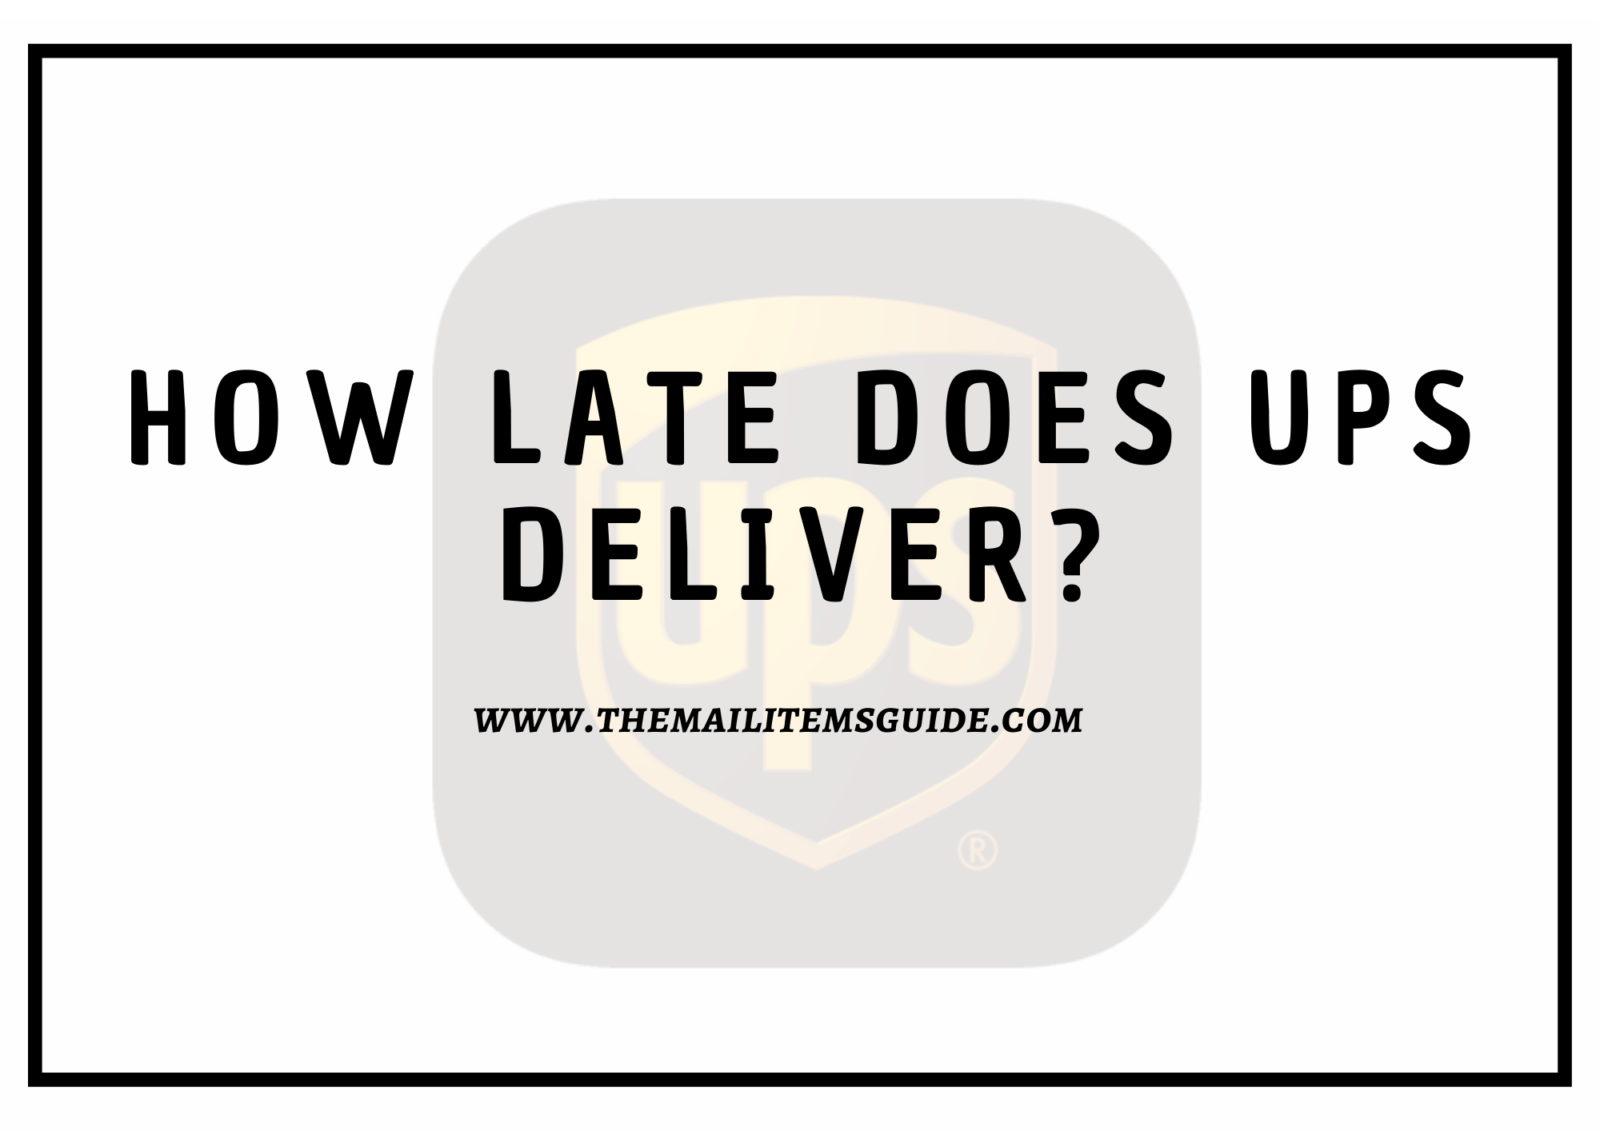 How Late Does Ups Deliver?